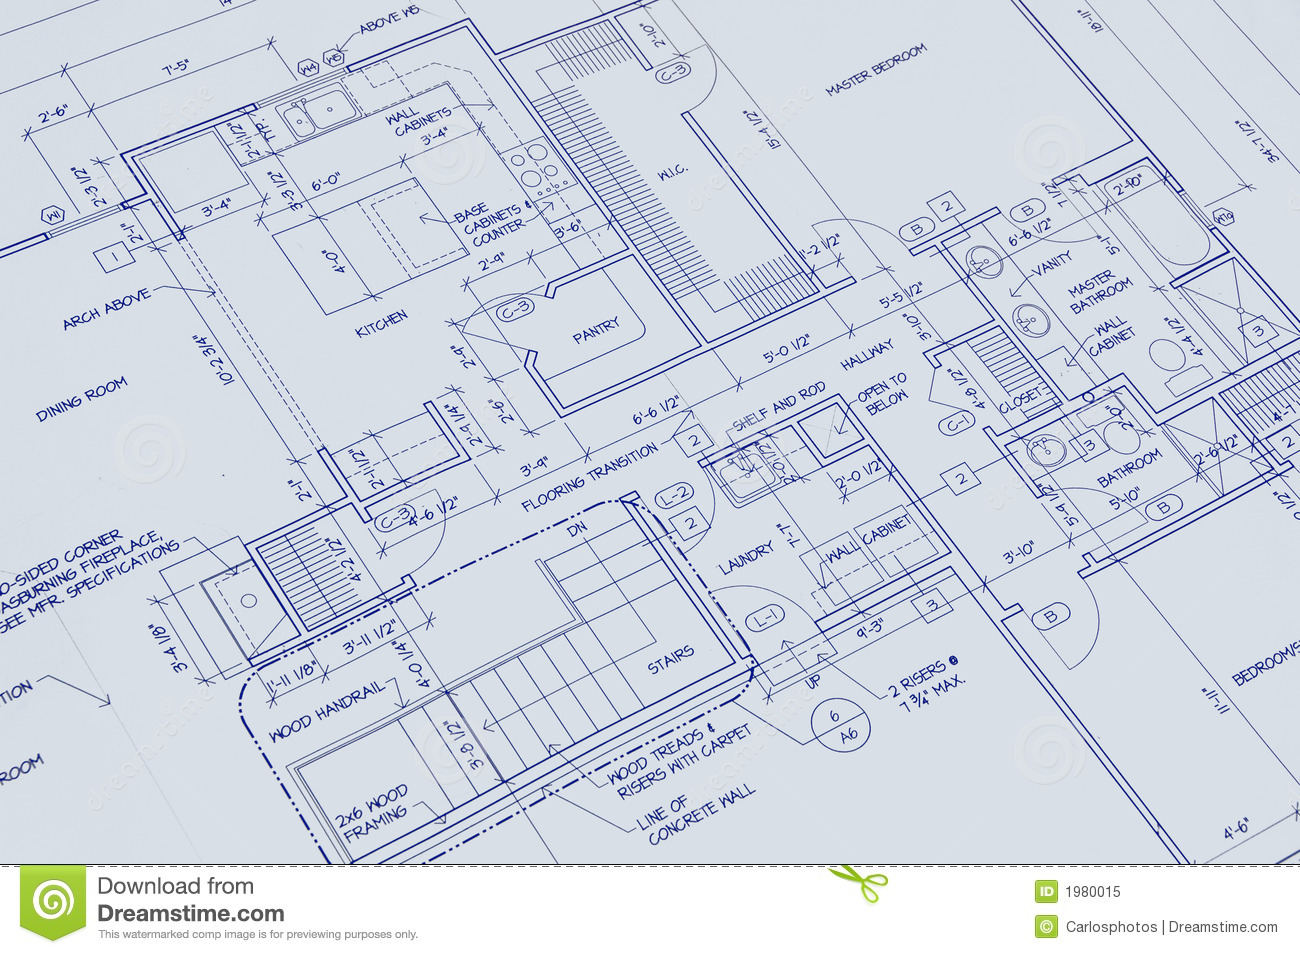 Blueprint of a house royalty free stock photo image 1980015 for House blueprint images